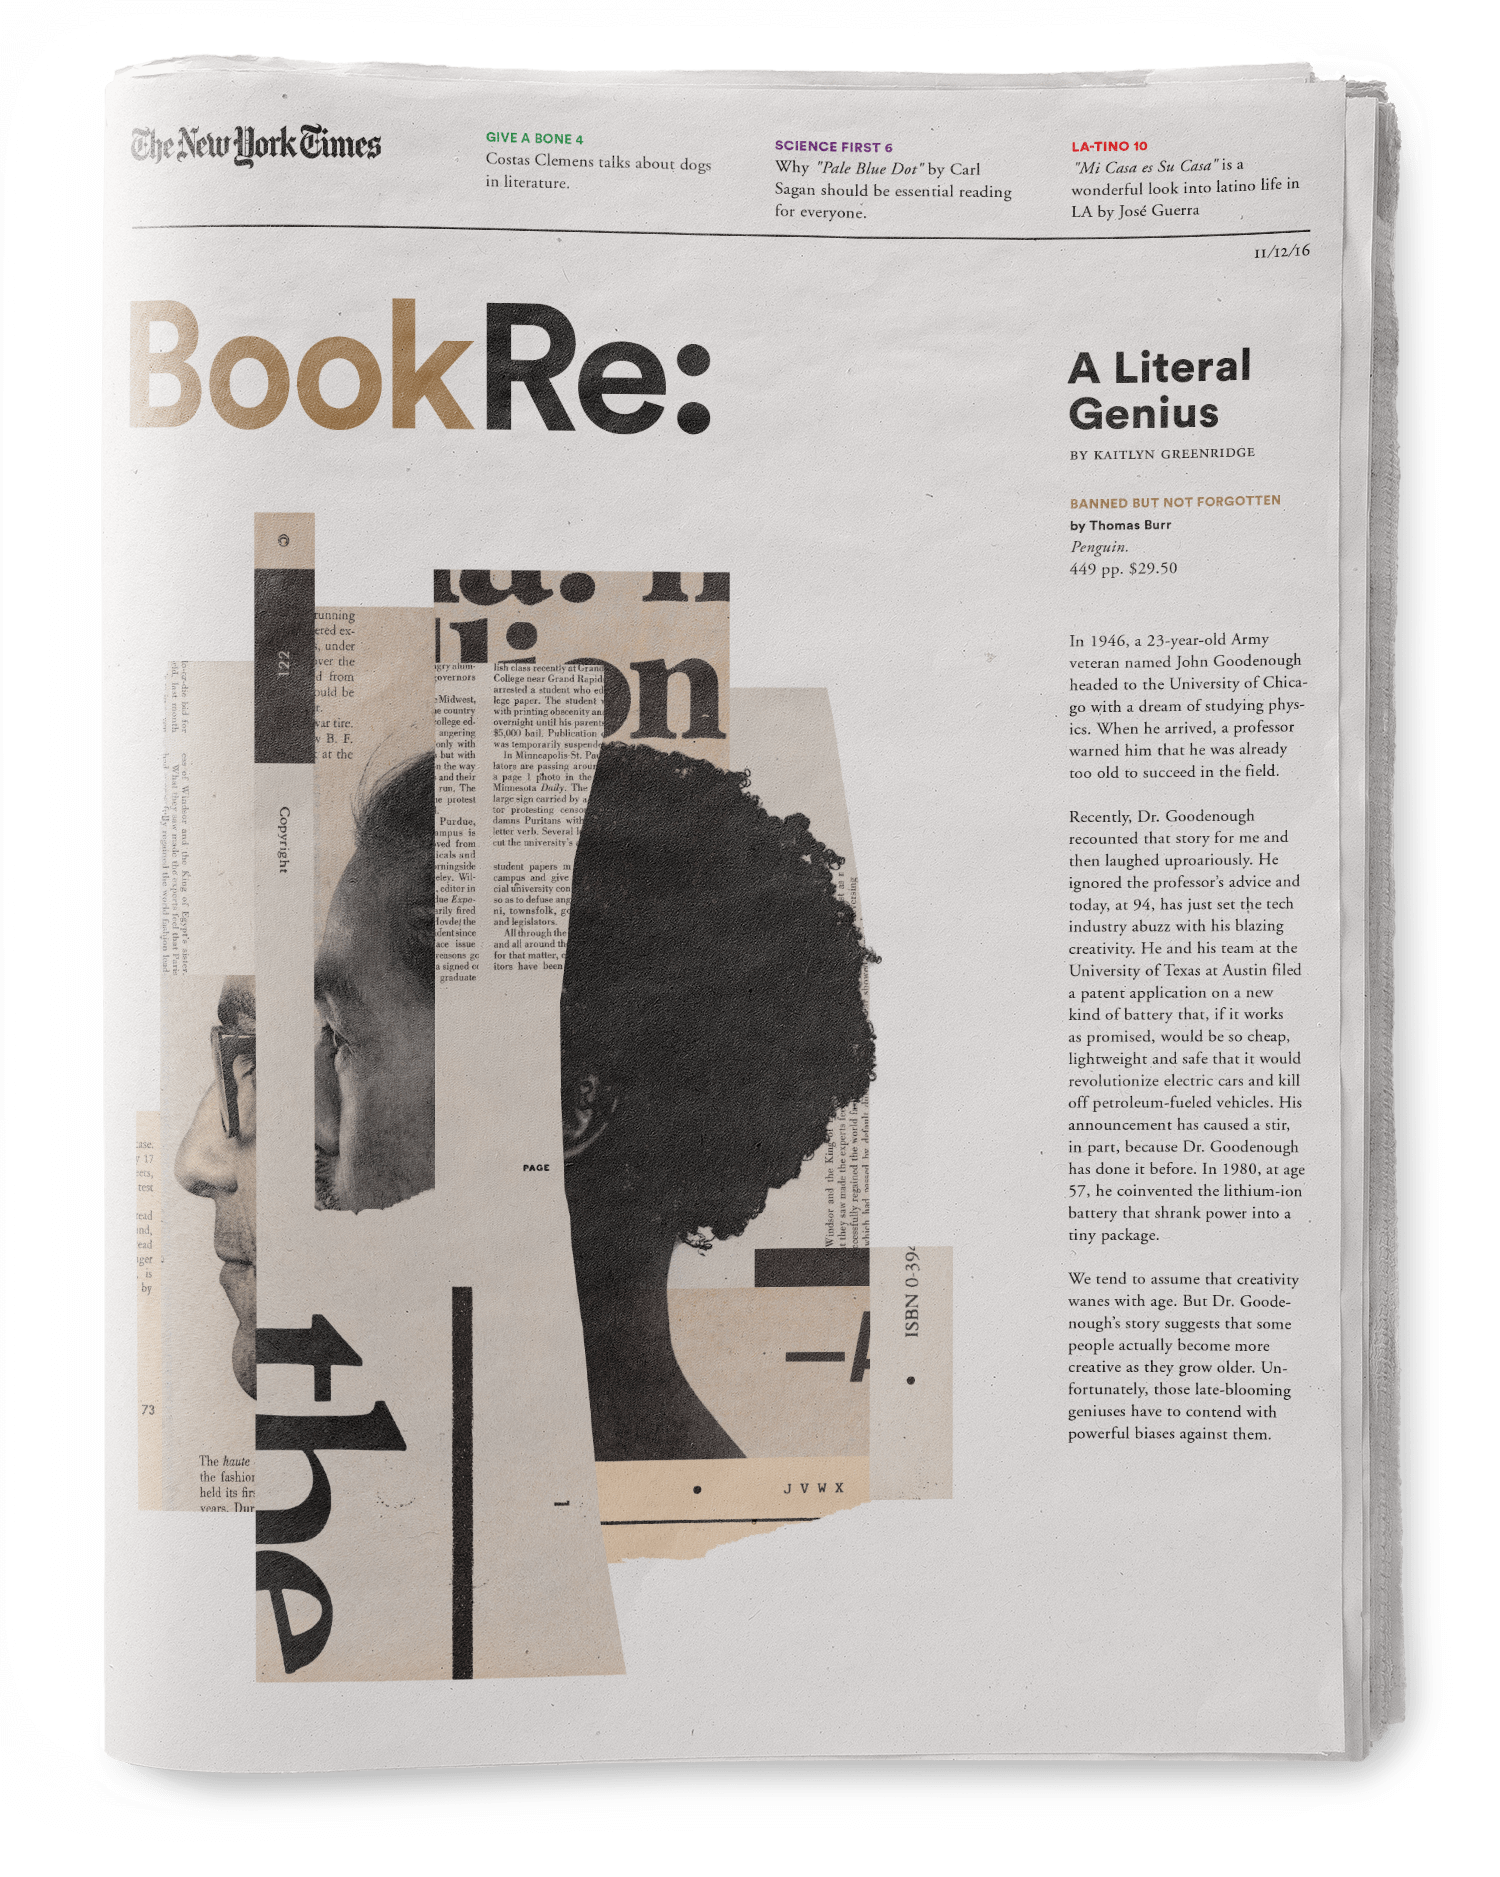 axel_lindmarker_new_york_times_book_review_6